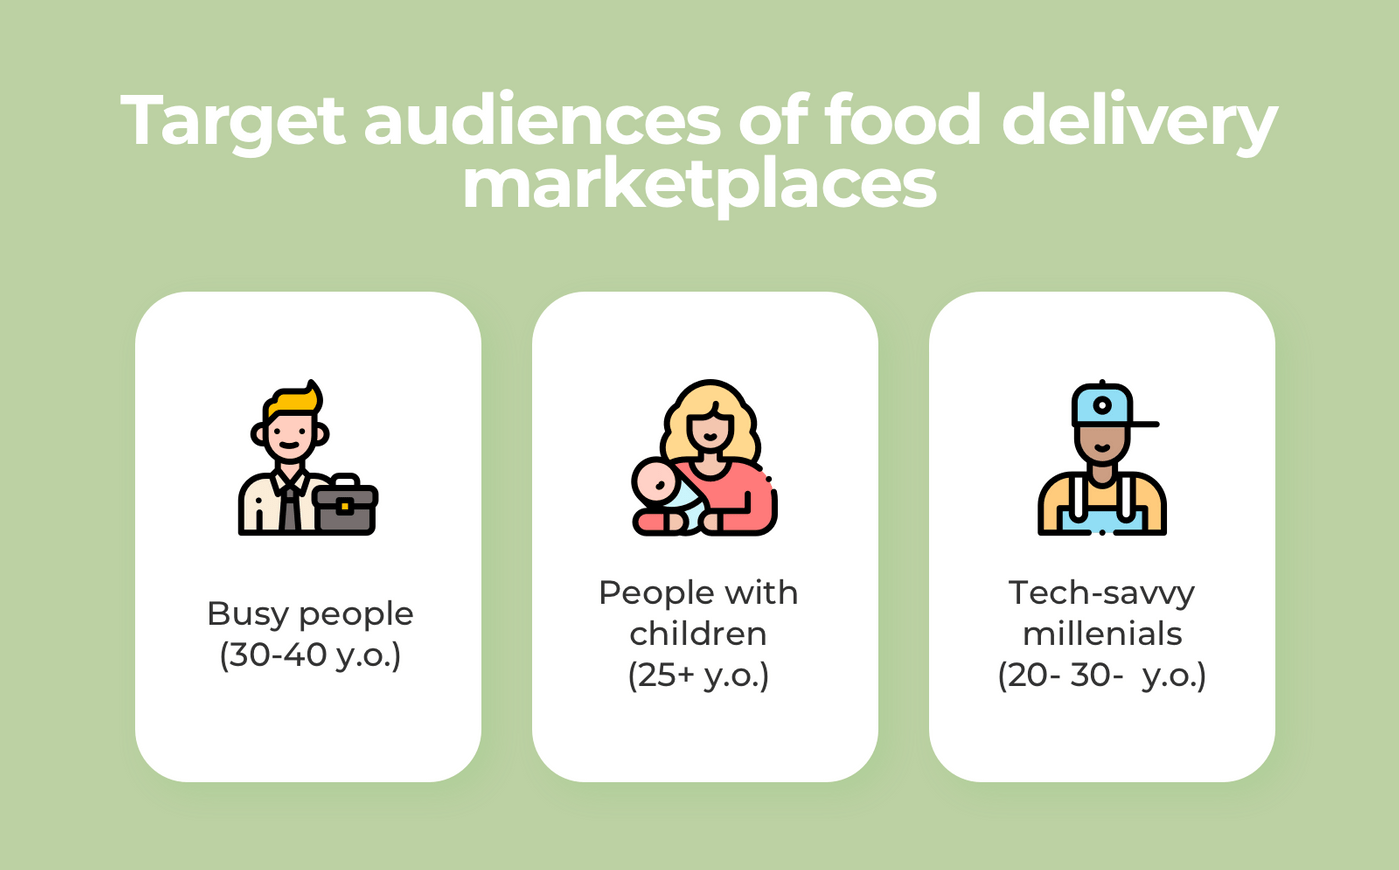 Target audience of food marketplaces